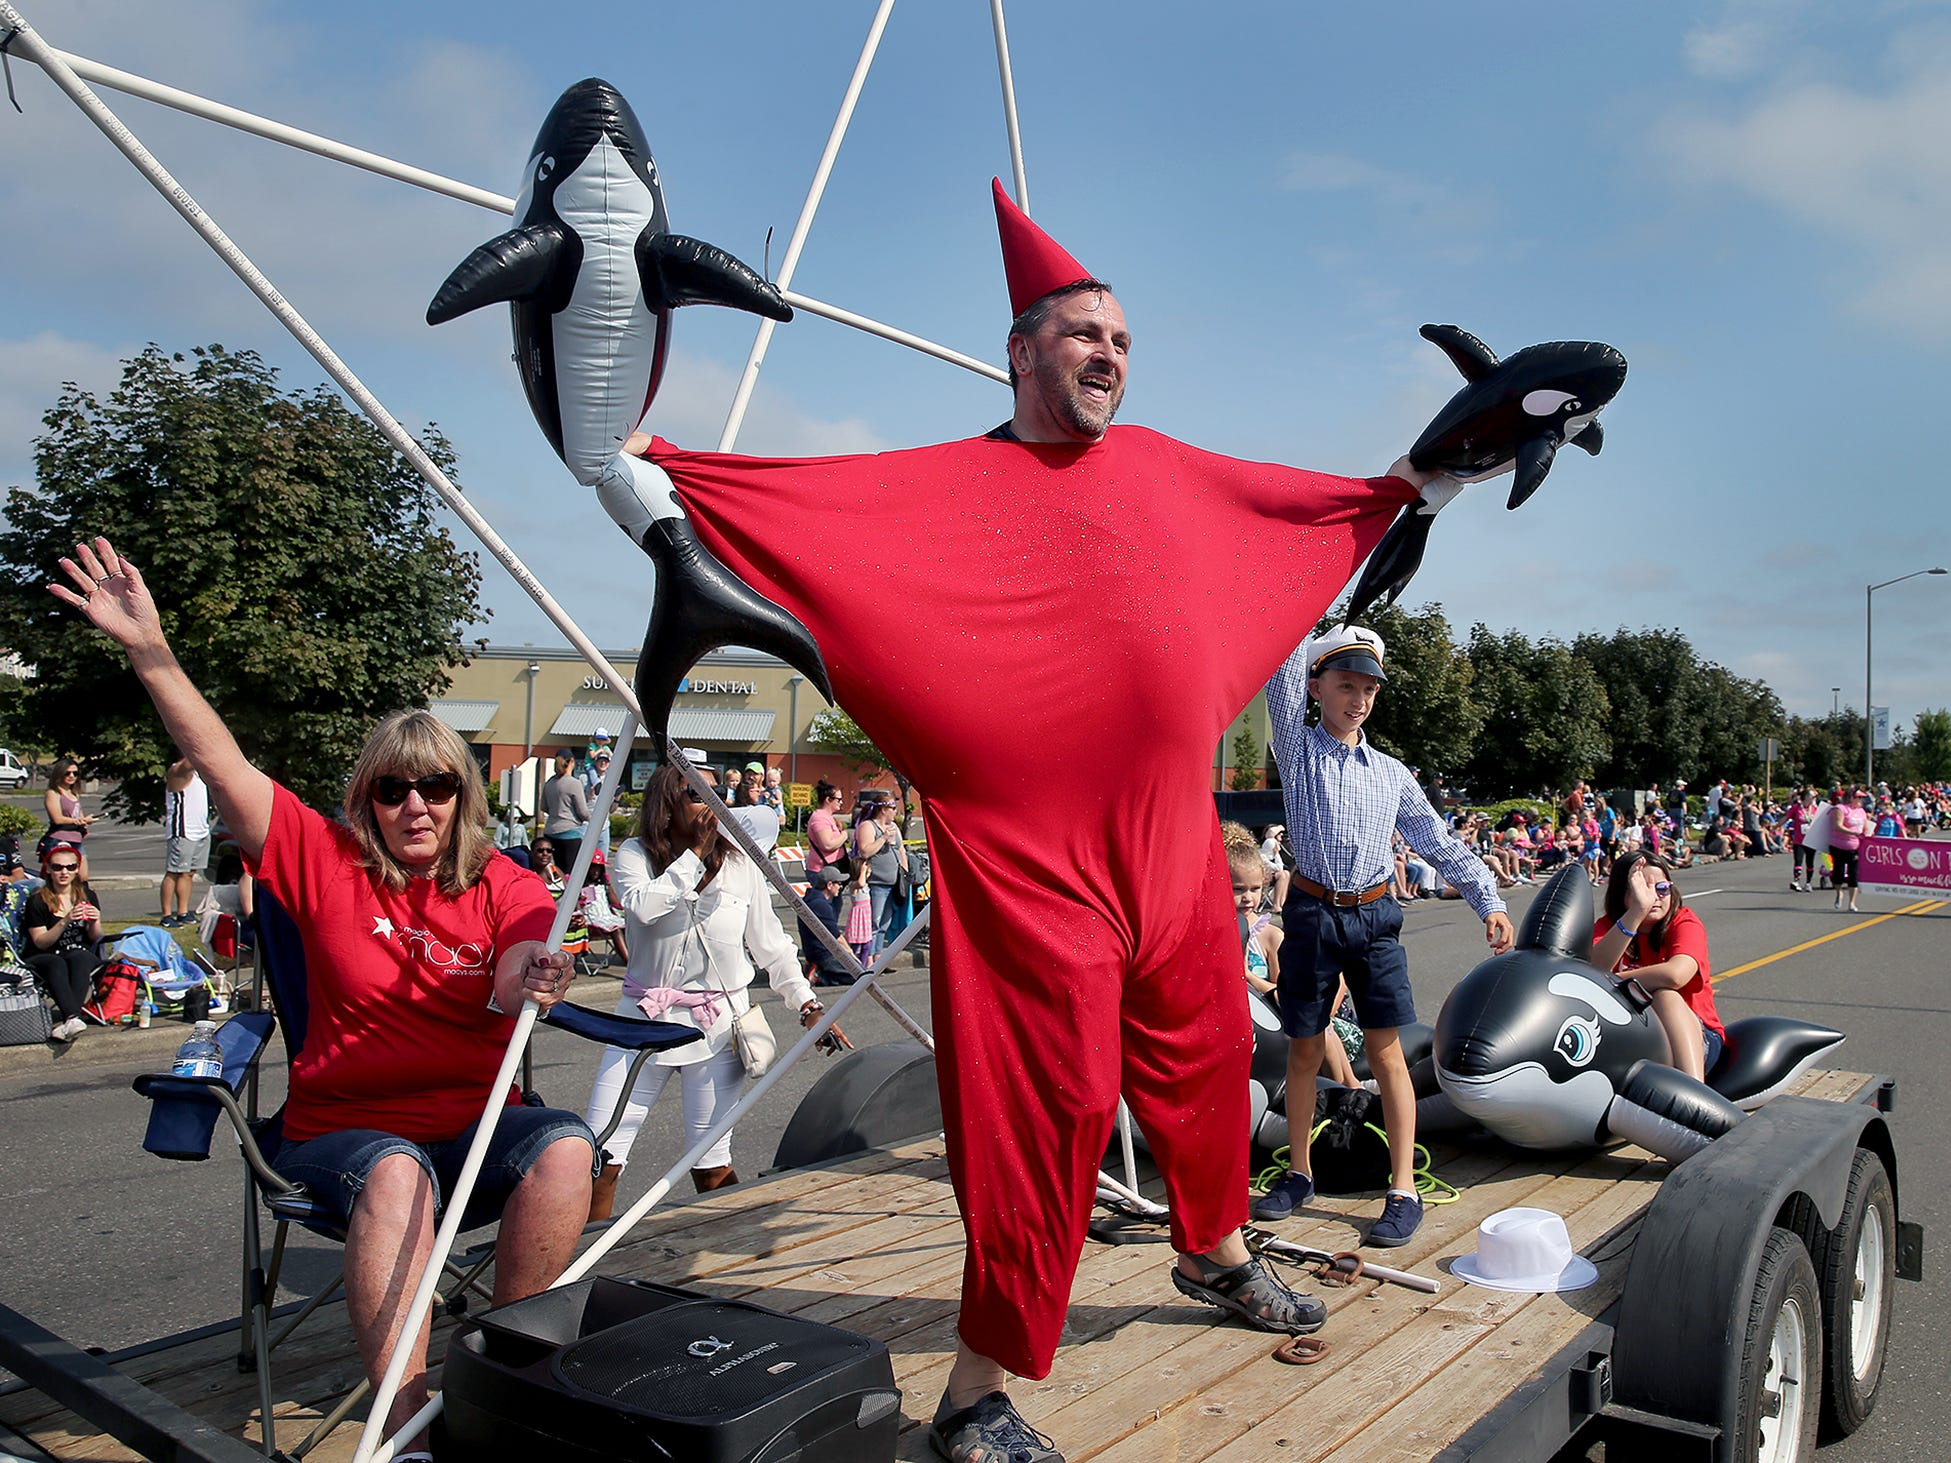 Jay Clayton, of Macy's at the Silverdale Mall, dances with Orcas on their float during the Whaling Days Festival Parade along Silverdale Way in Silverdale, WA on Saturday, July 28, 2018.